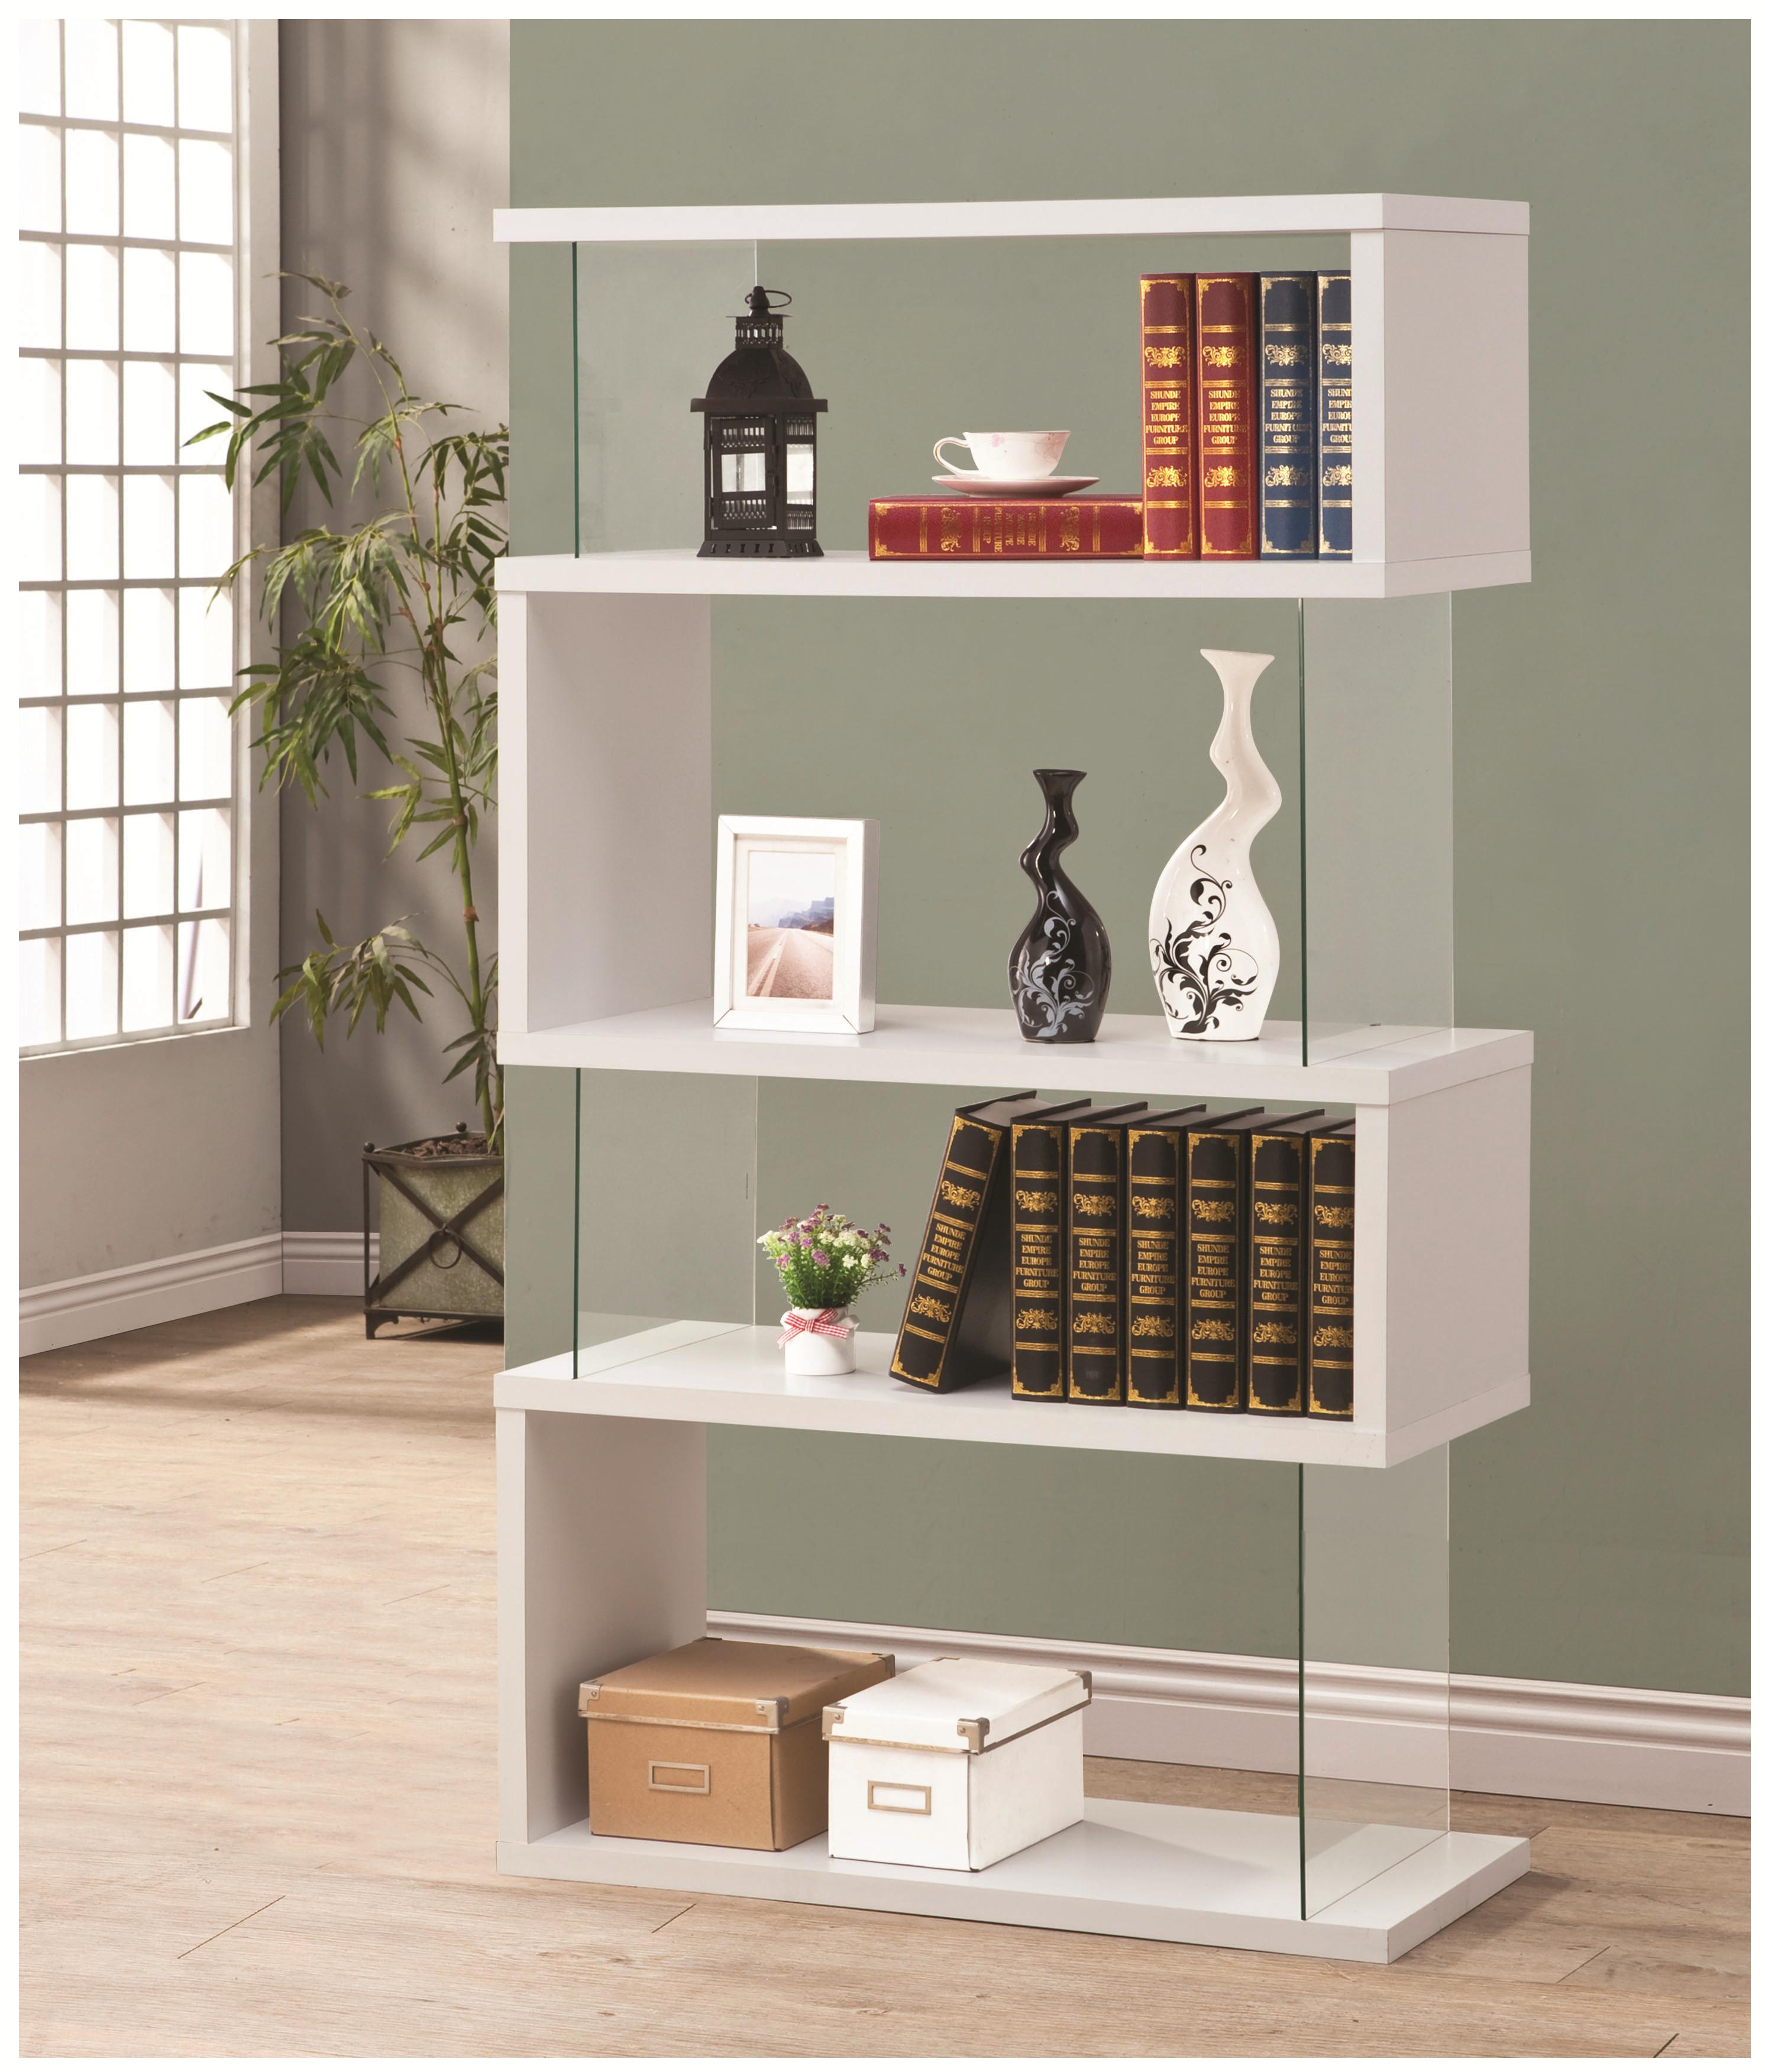 modified hack in shelving pin ikea built to billy bookshelf like bookcase backless alcove look